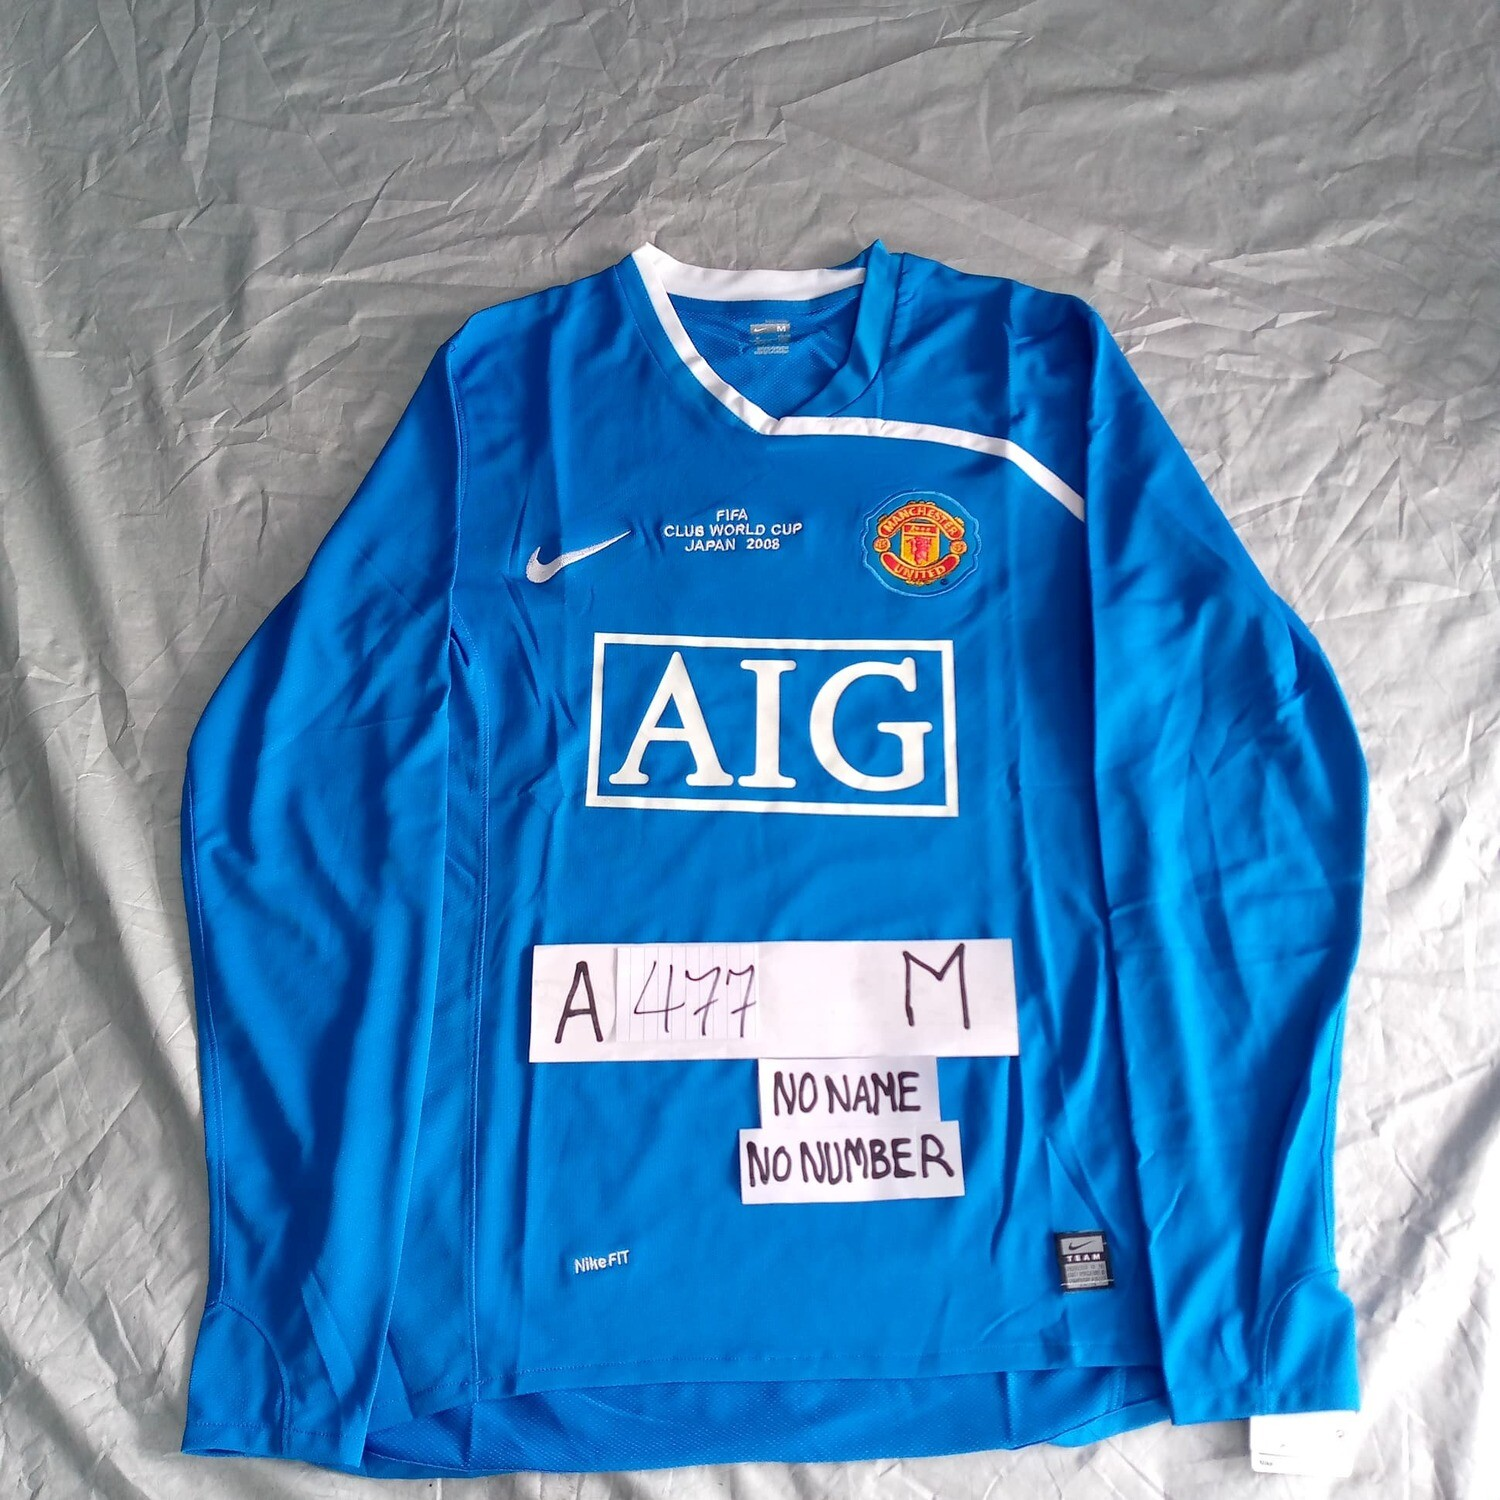 A477 MANCHESTER UNITED FINAL WORLD CUP 2008  LONG SLEEVES SIZE M TAGLIA M